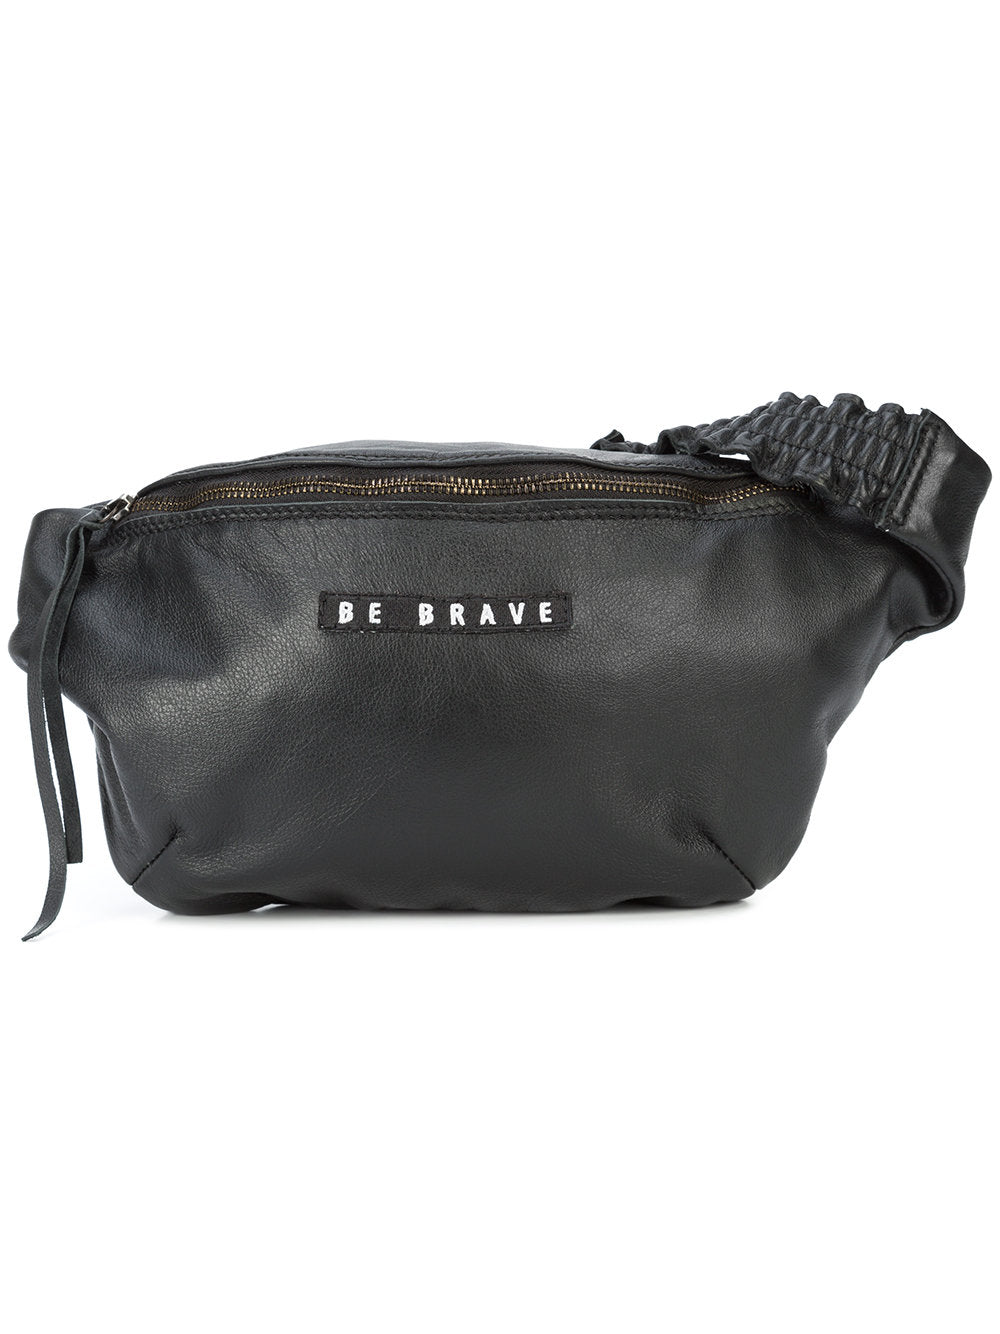 Barbara Bologna Black Leather Marsupio Fanny Pack - 1